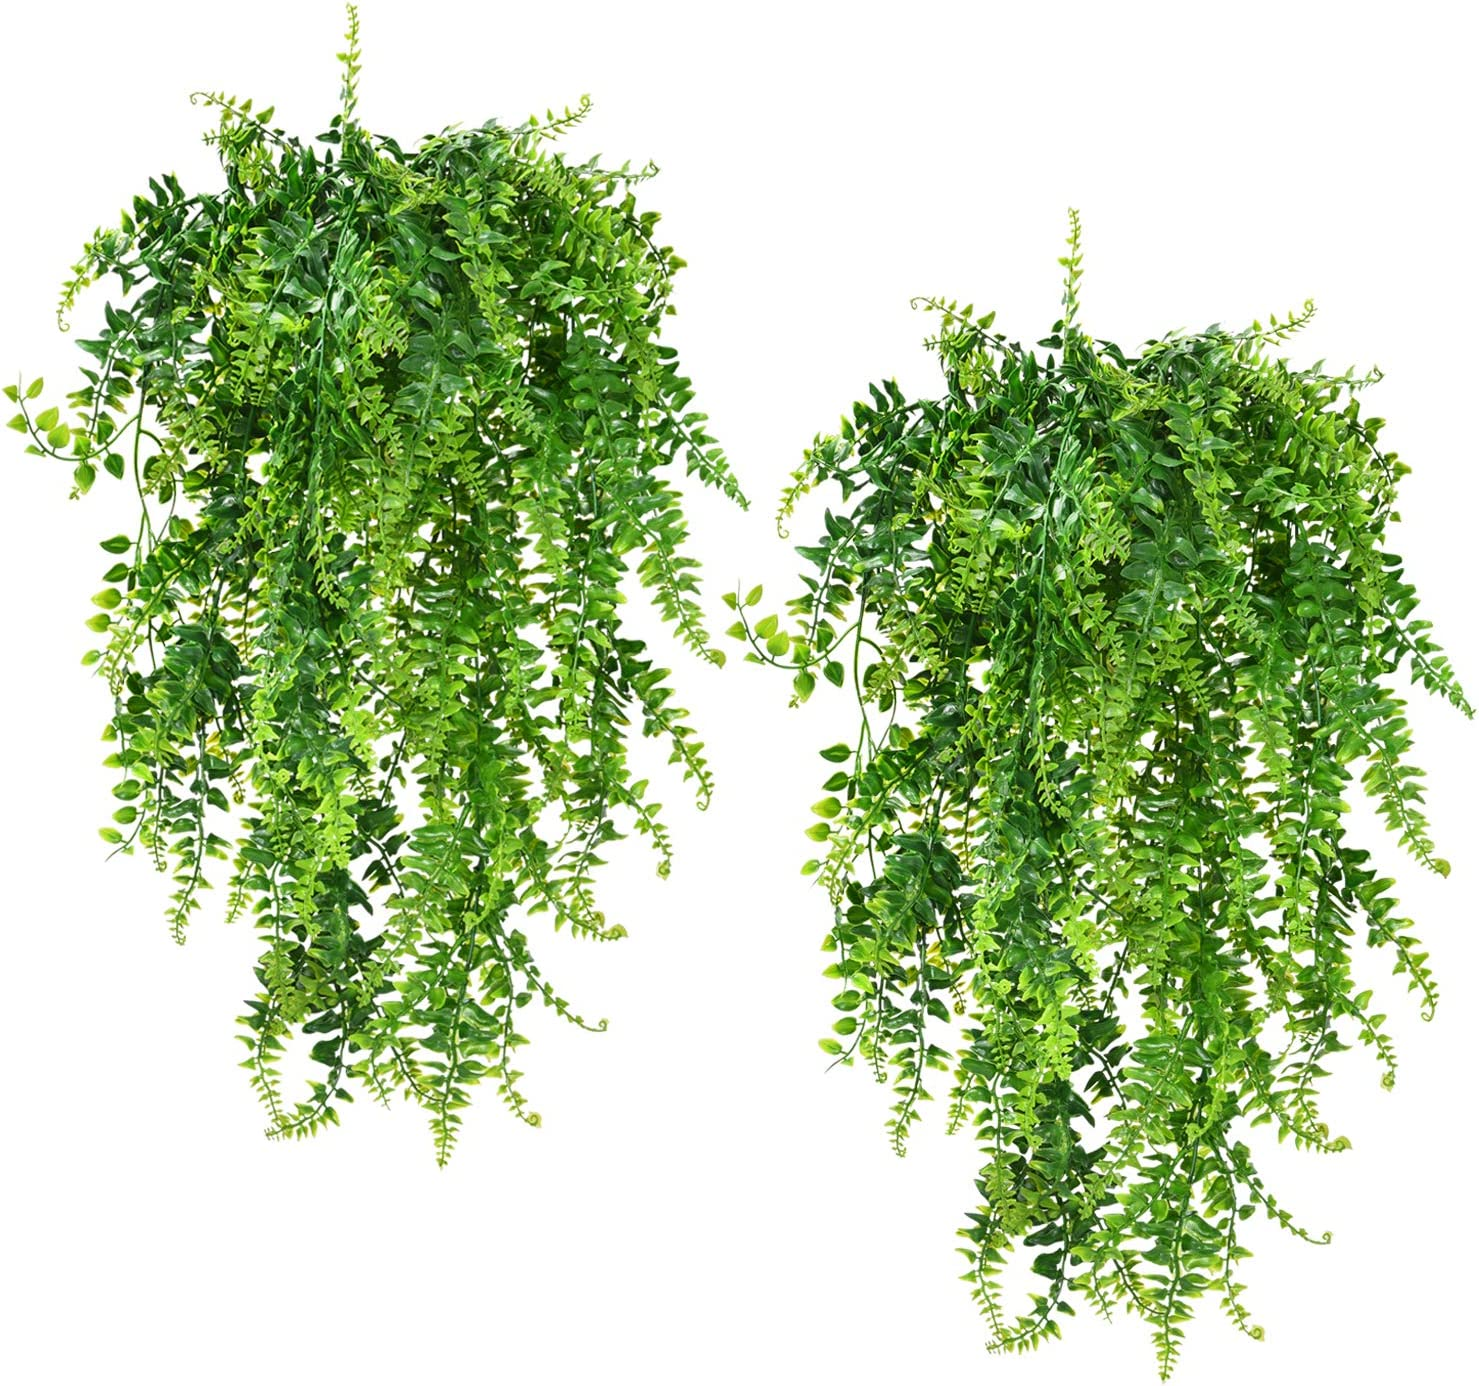 Artificial Hanging Plants Vines Ferns Persian Rattans, Greenery Hanging Queen Boston Ivy with UV Resistant Performance for Safari Jungle Party Wedding Hanging Basket Decor, 32